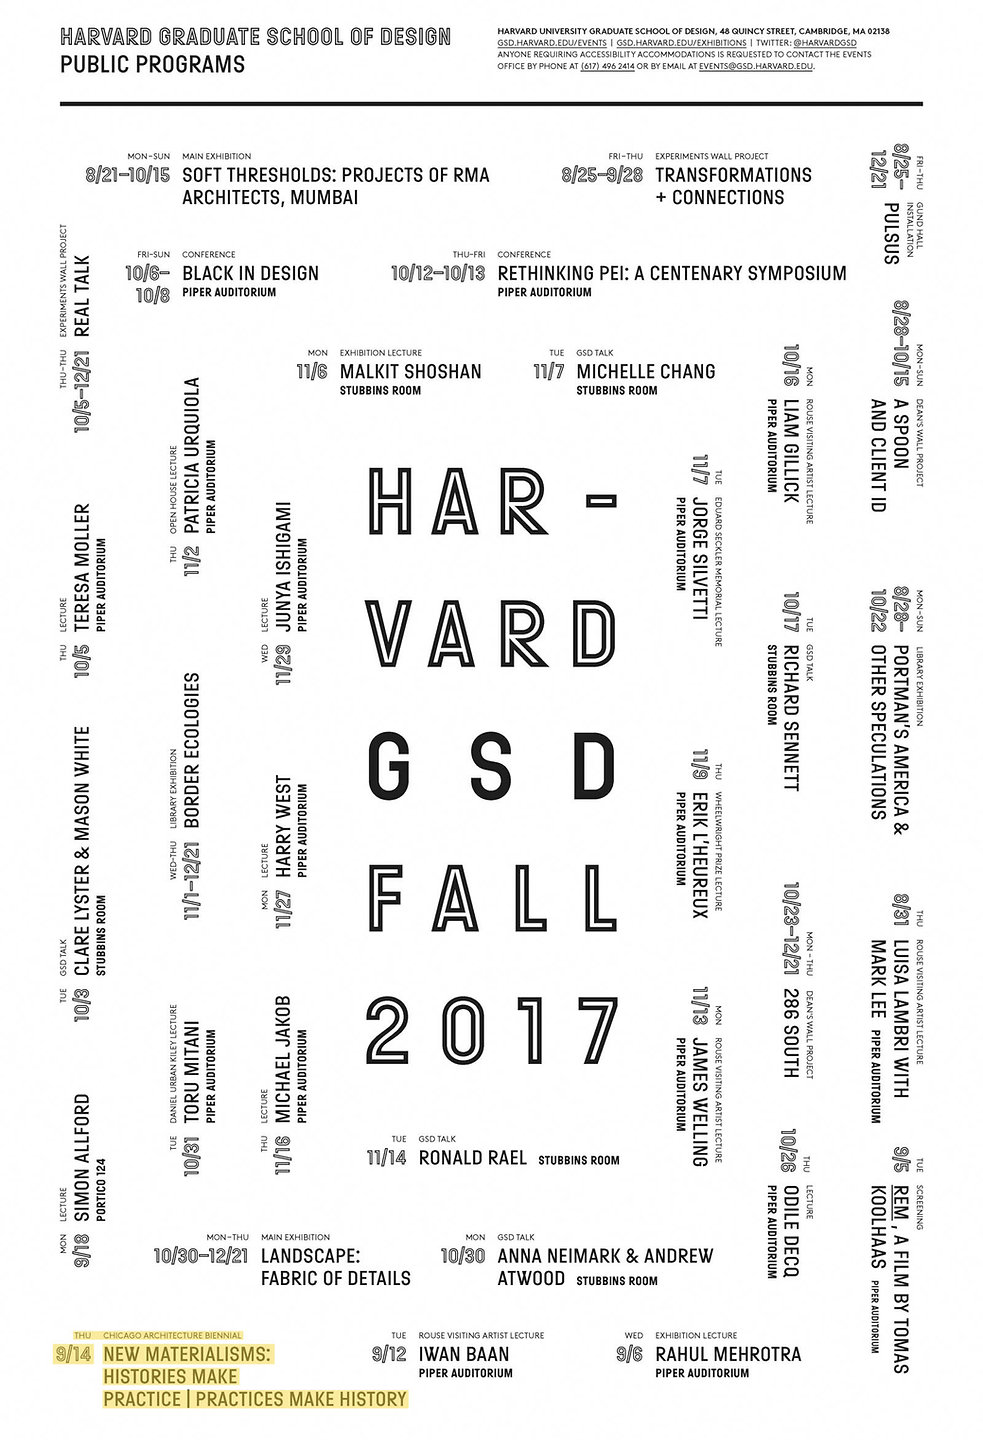 Ensamble Studio 2017 Chicago Architecture Biennial GSD Harvard New Materialisms: Histories Make Practice | Practices Make History Public Lecture